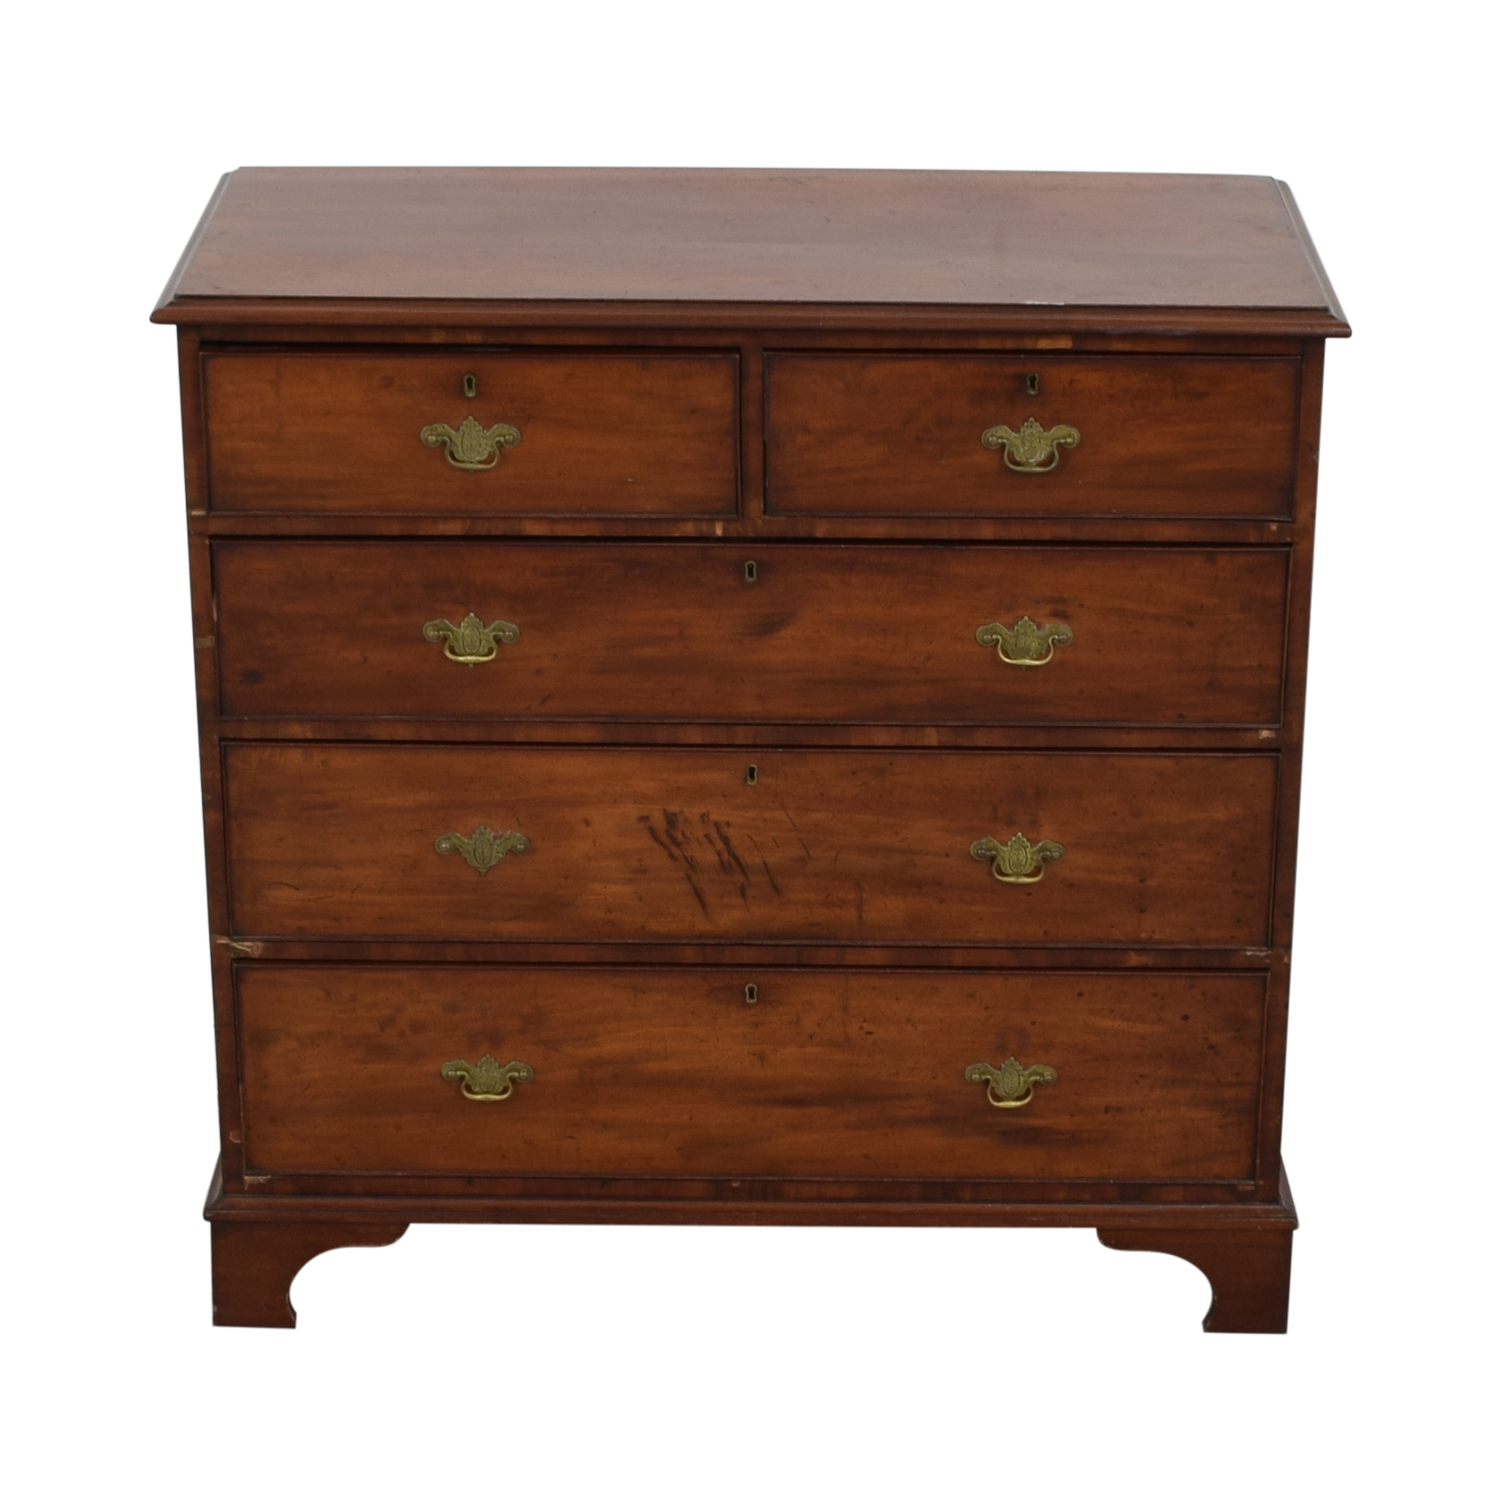 Five-Drawer Chest of Drawers Dressers